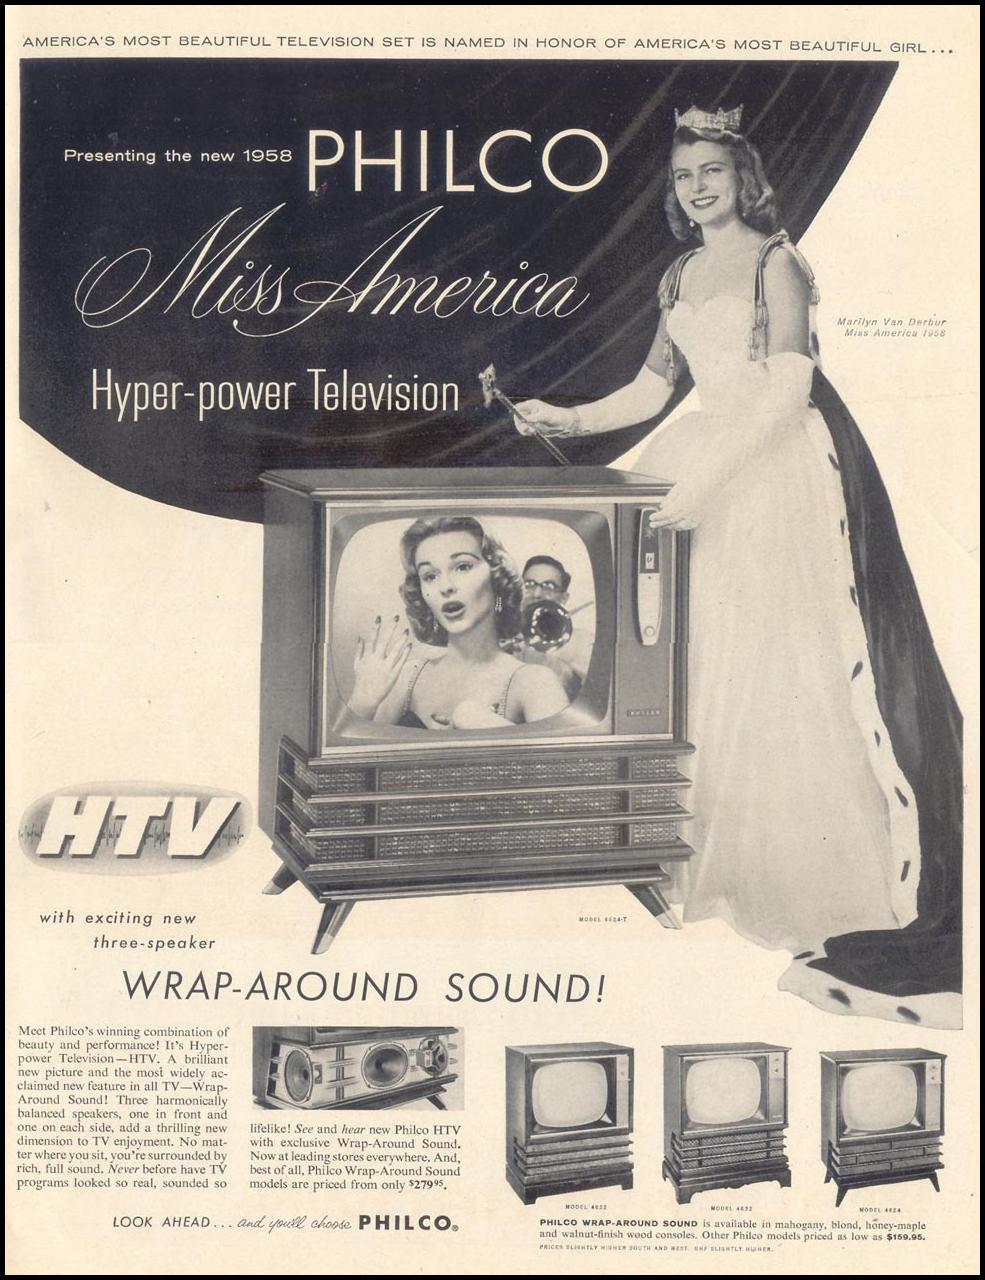 PHILCO MISS AMERICA HYPER-POWER TELEVISION LIFE 11/11/1957 p. 1